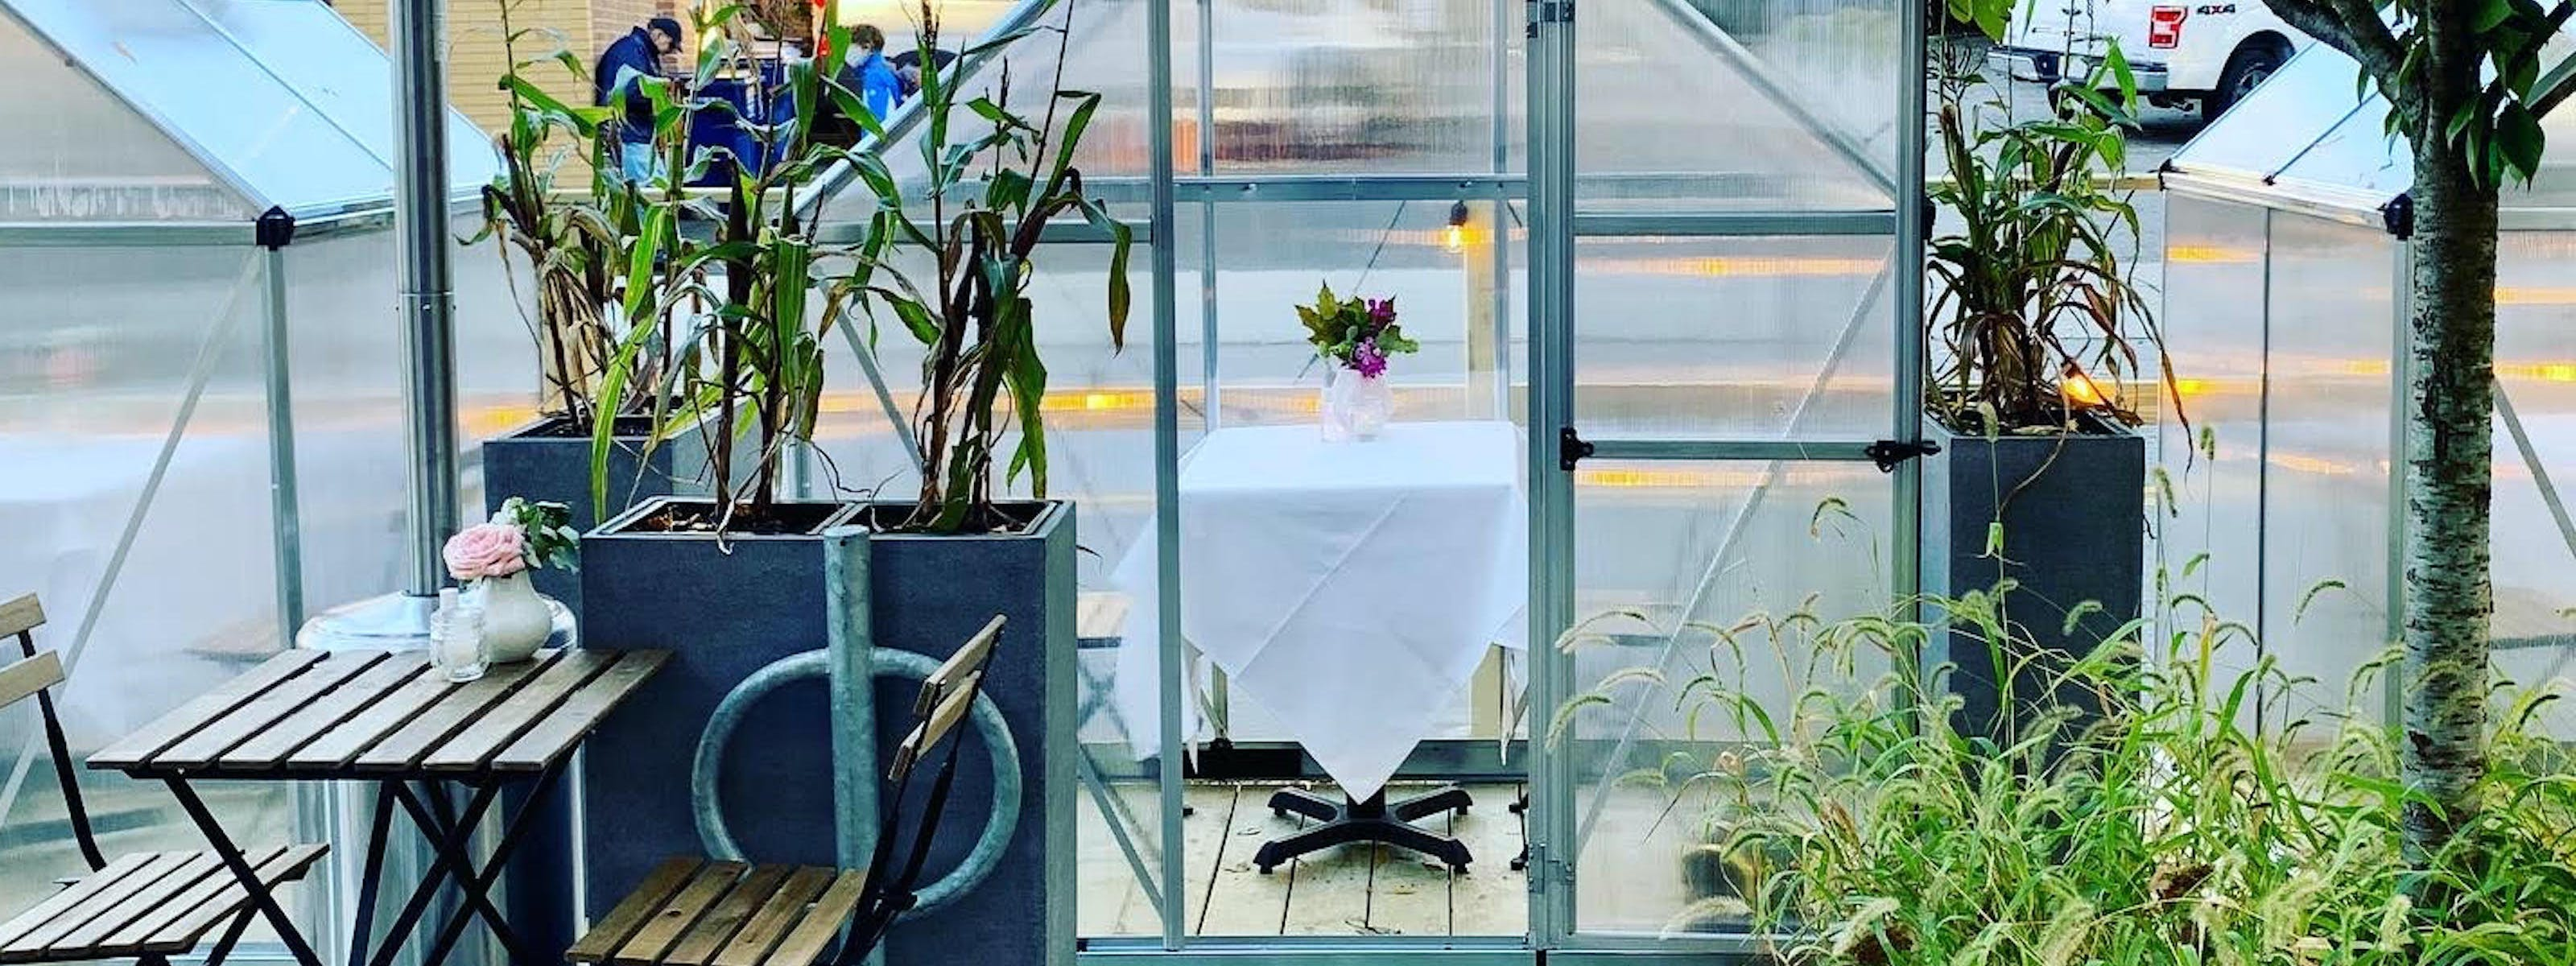 Boston Restaurants With Enclosed Tents, Domes And Greenhouses For Outdoor Dining